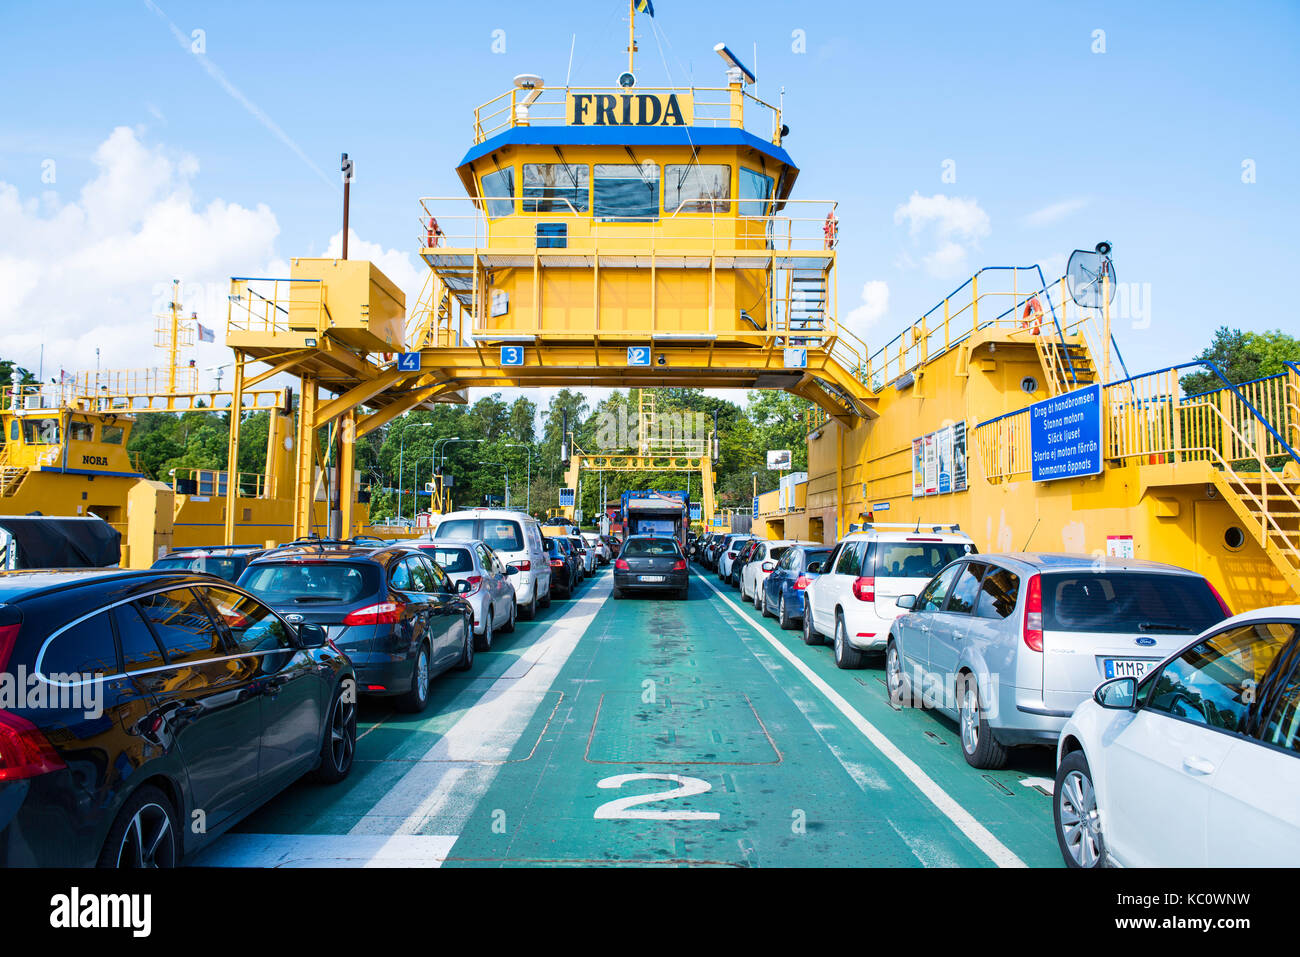 Aboard the car and passenger ferry, Frida, between Yxlan and Furusund in the Stockholm archipelago in Sweden - Stock Image